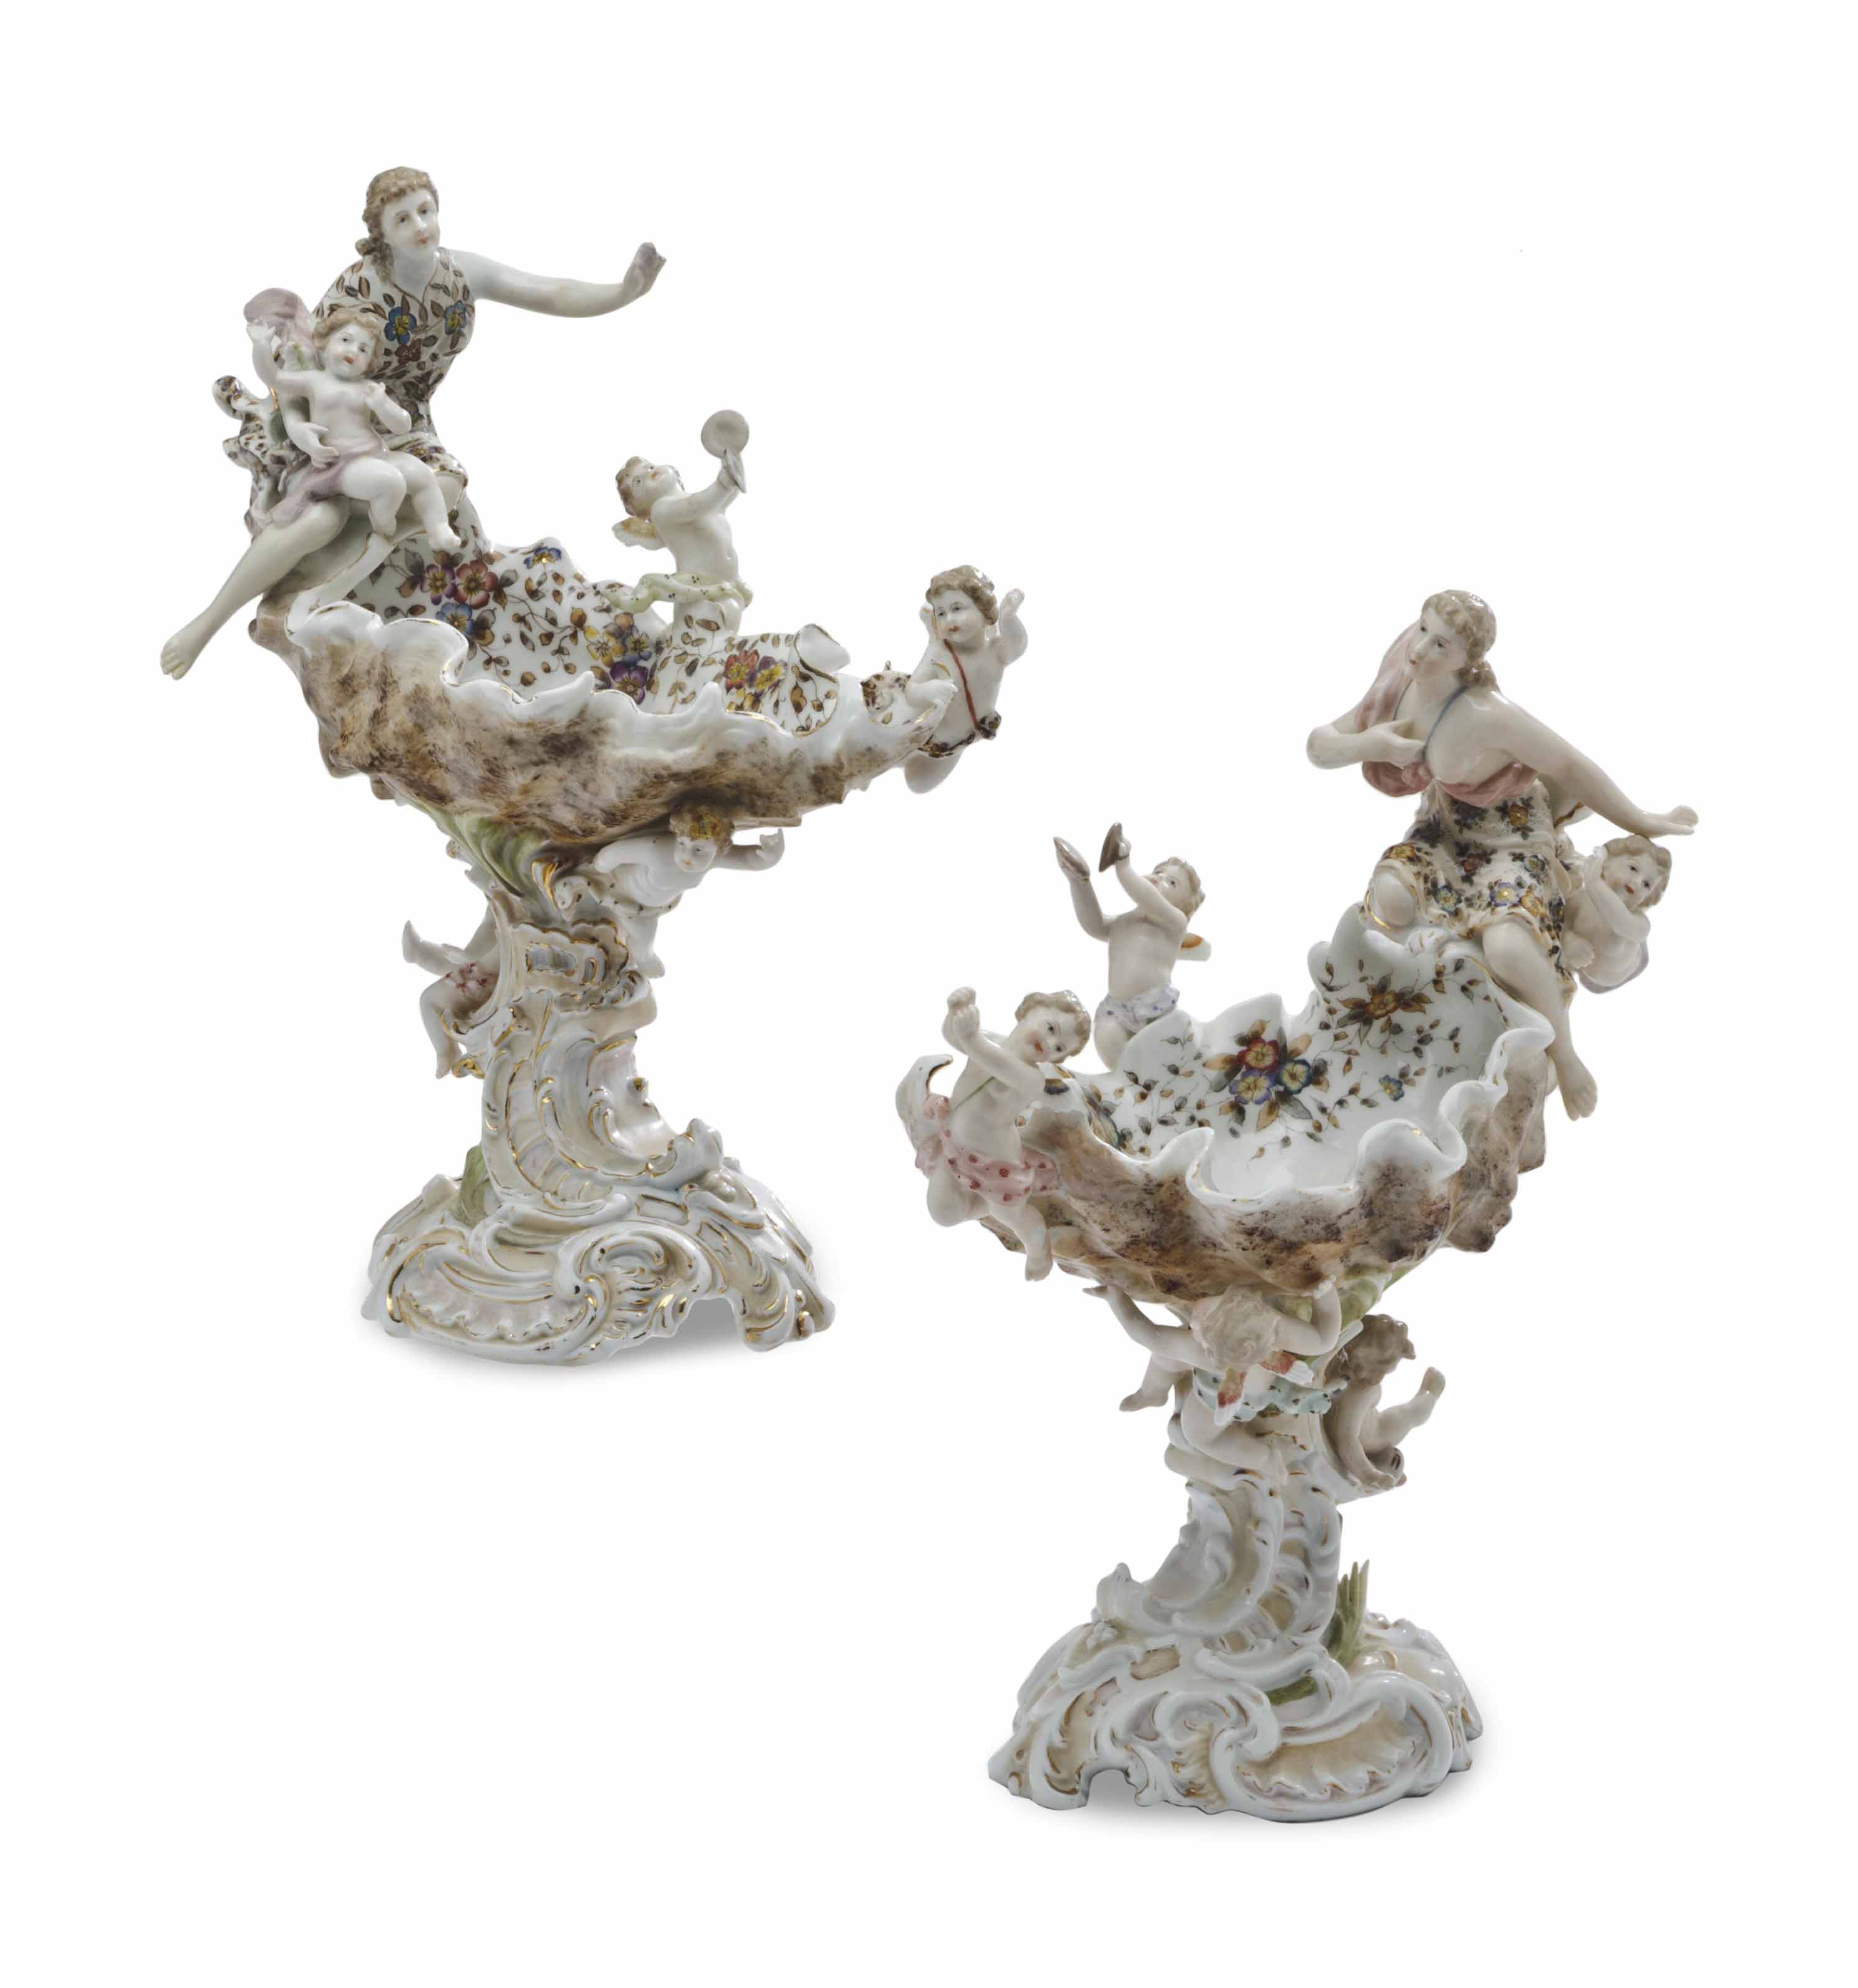 A PAIR OF GERMAN PORCELAIN SHELL-FORM FIGURAL SWEET MEAT DISHES,